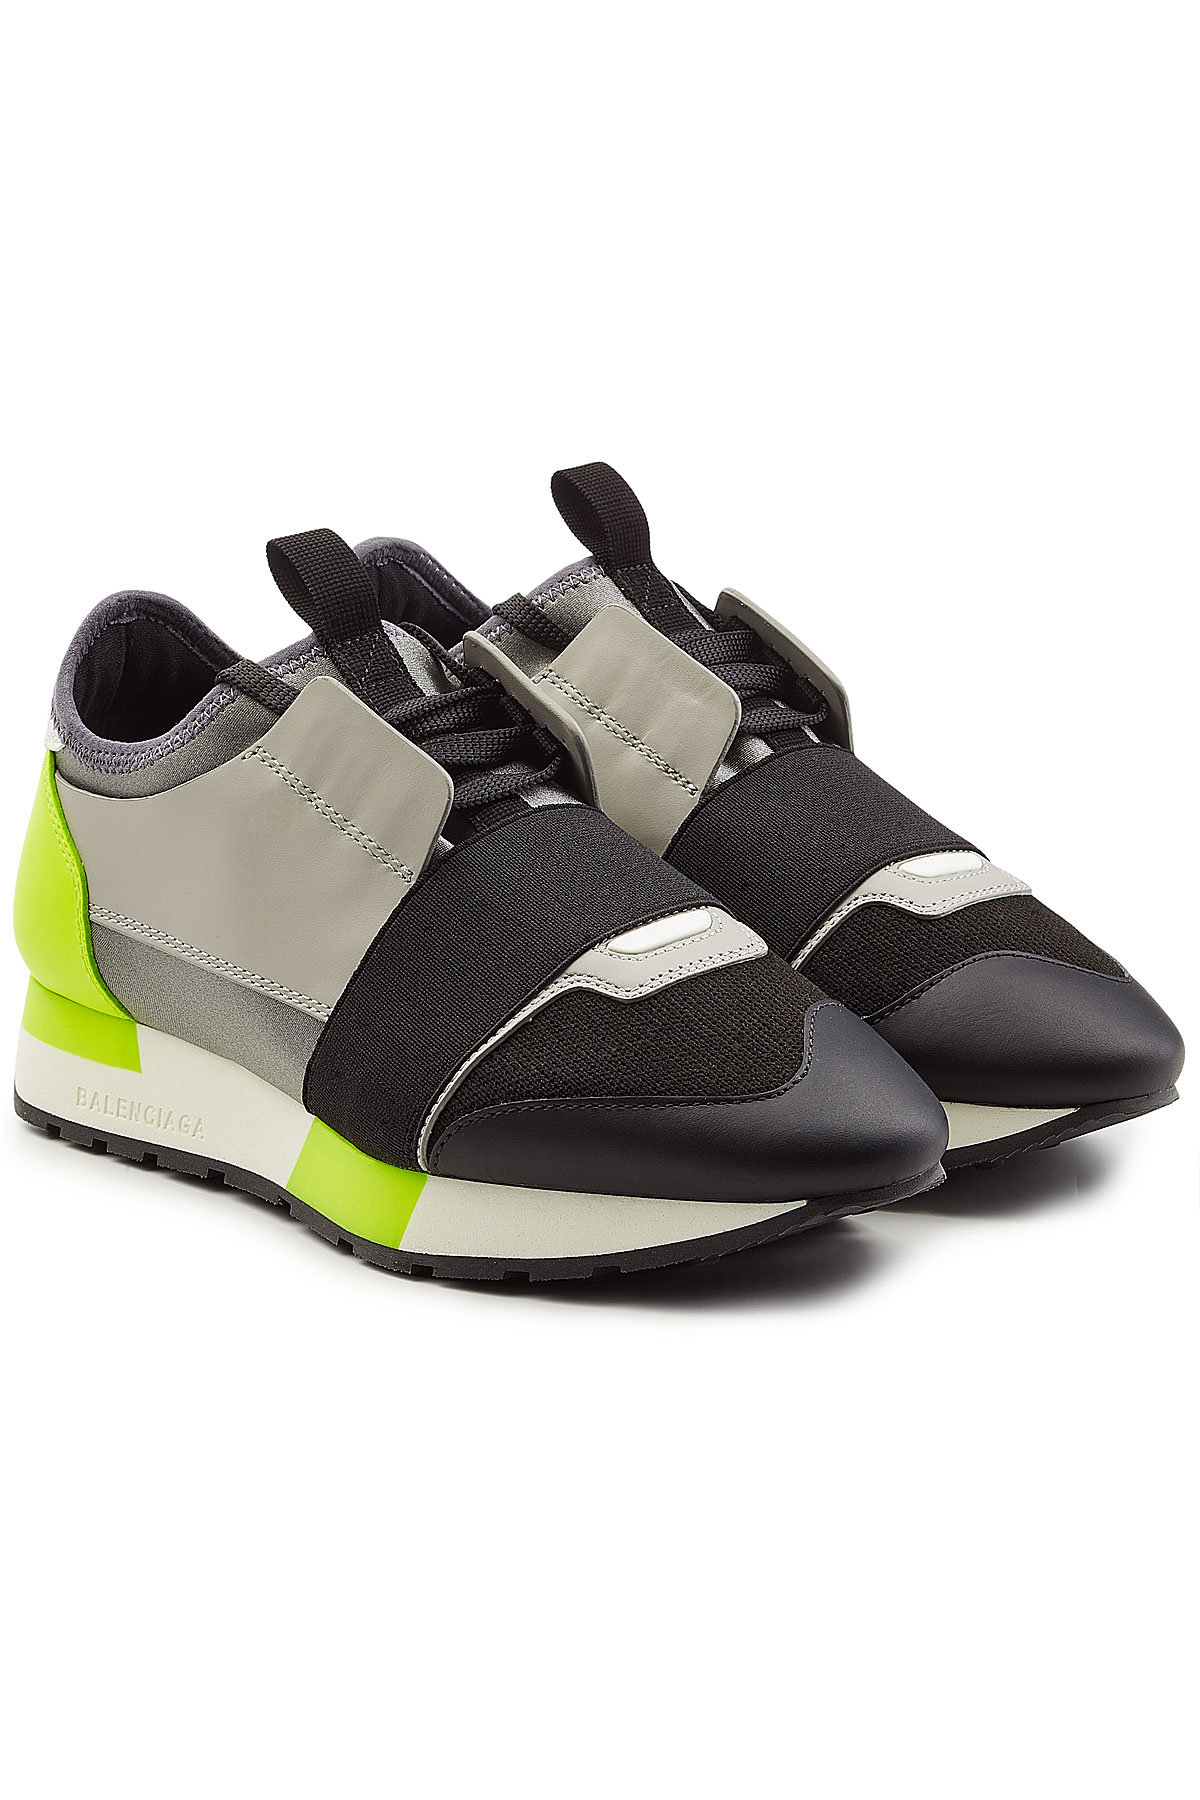 Balenciaga Race Runner Sneakers with Leather and Mesh Gr. IT 40 Kr17HMzI